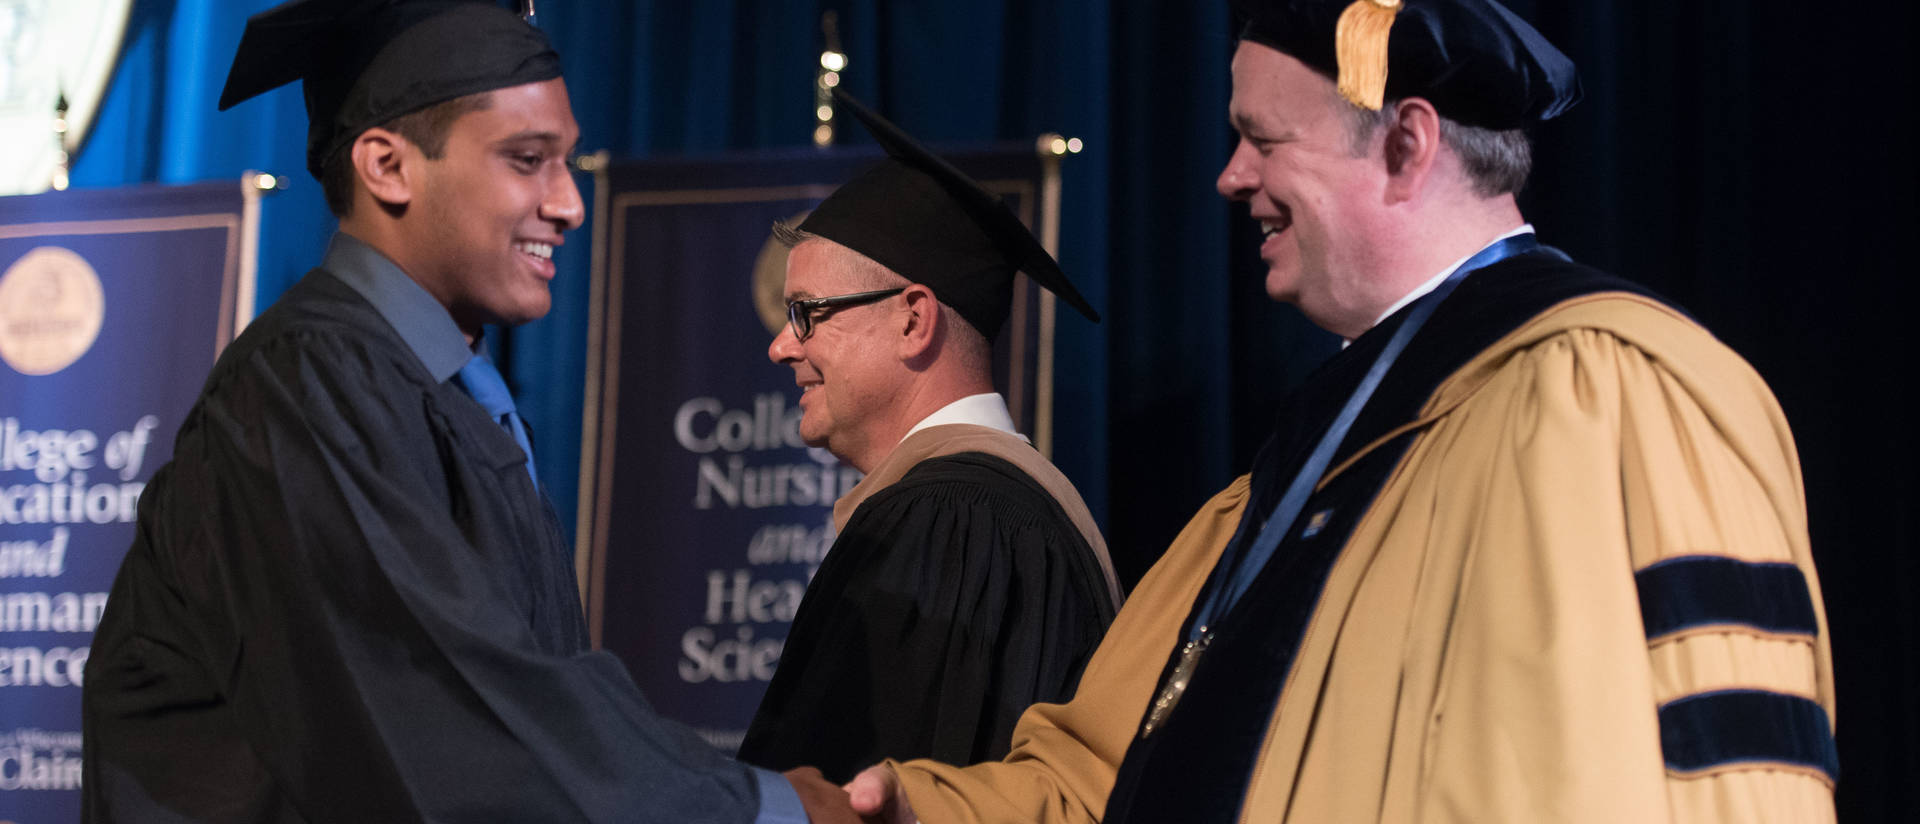 UW-Eau Claire grad shakes hands with chancellor on commencement stage